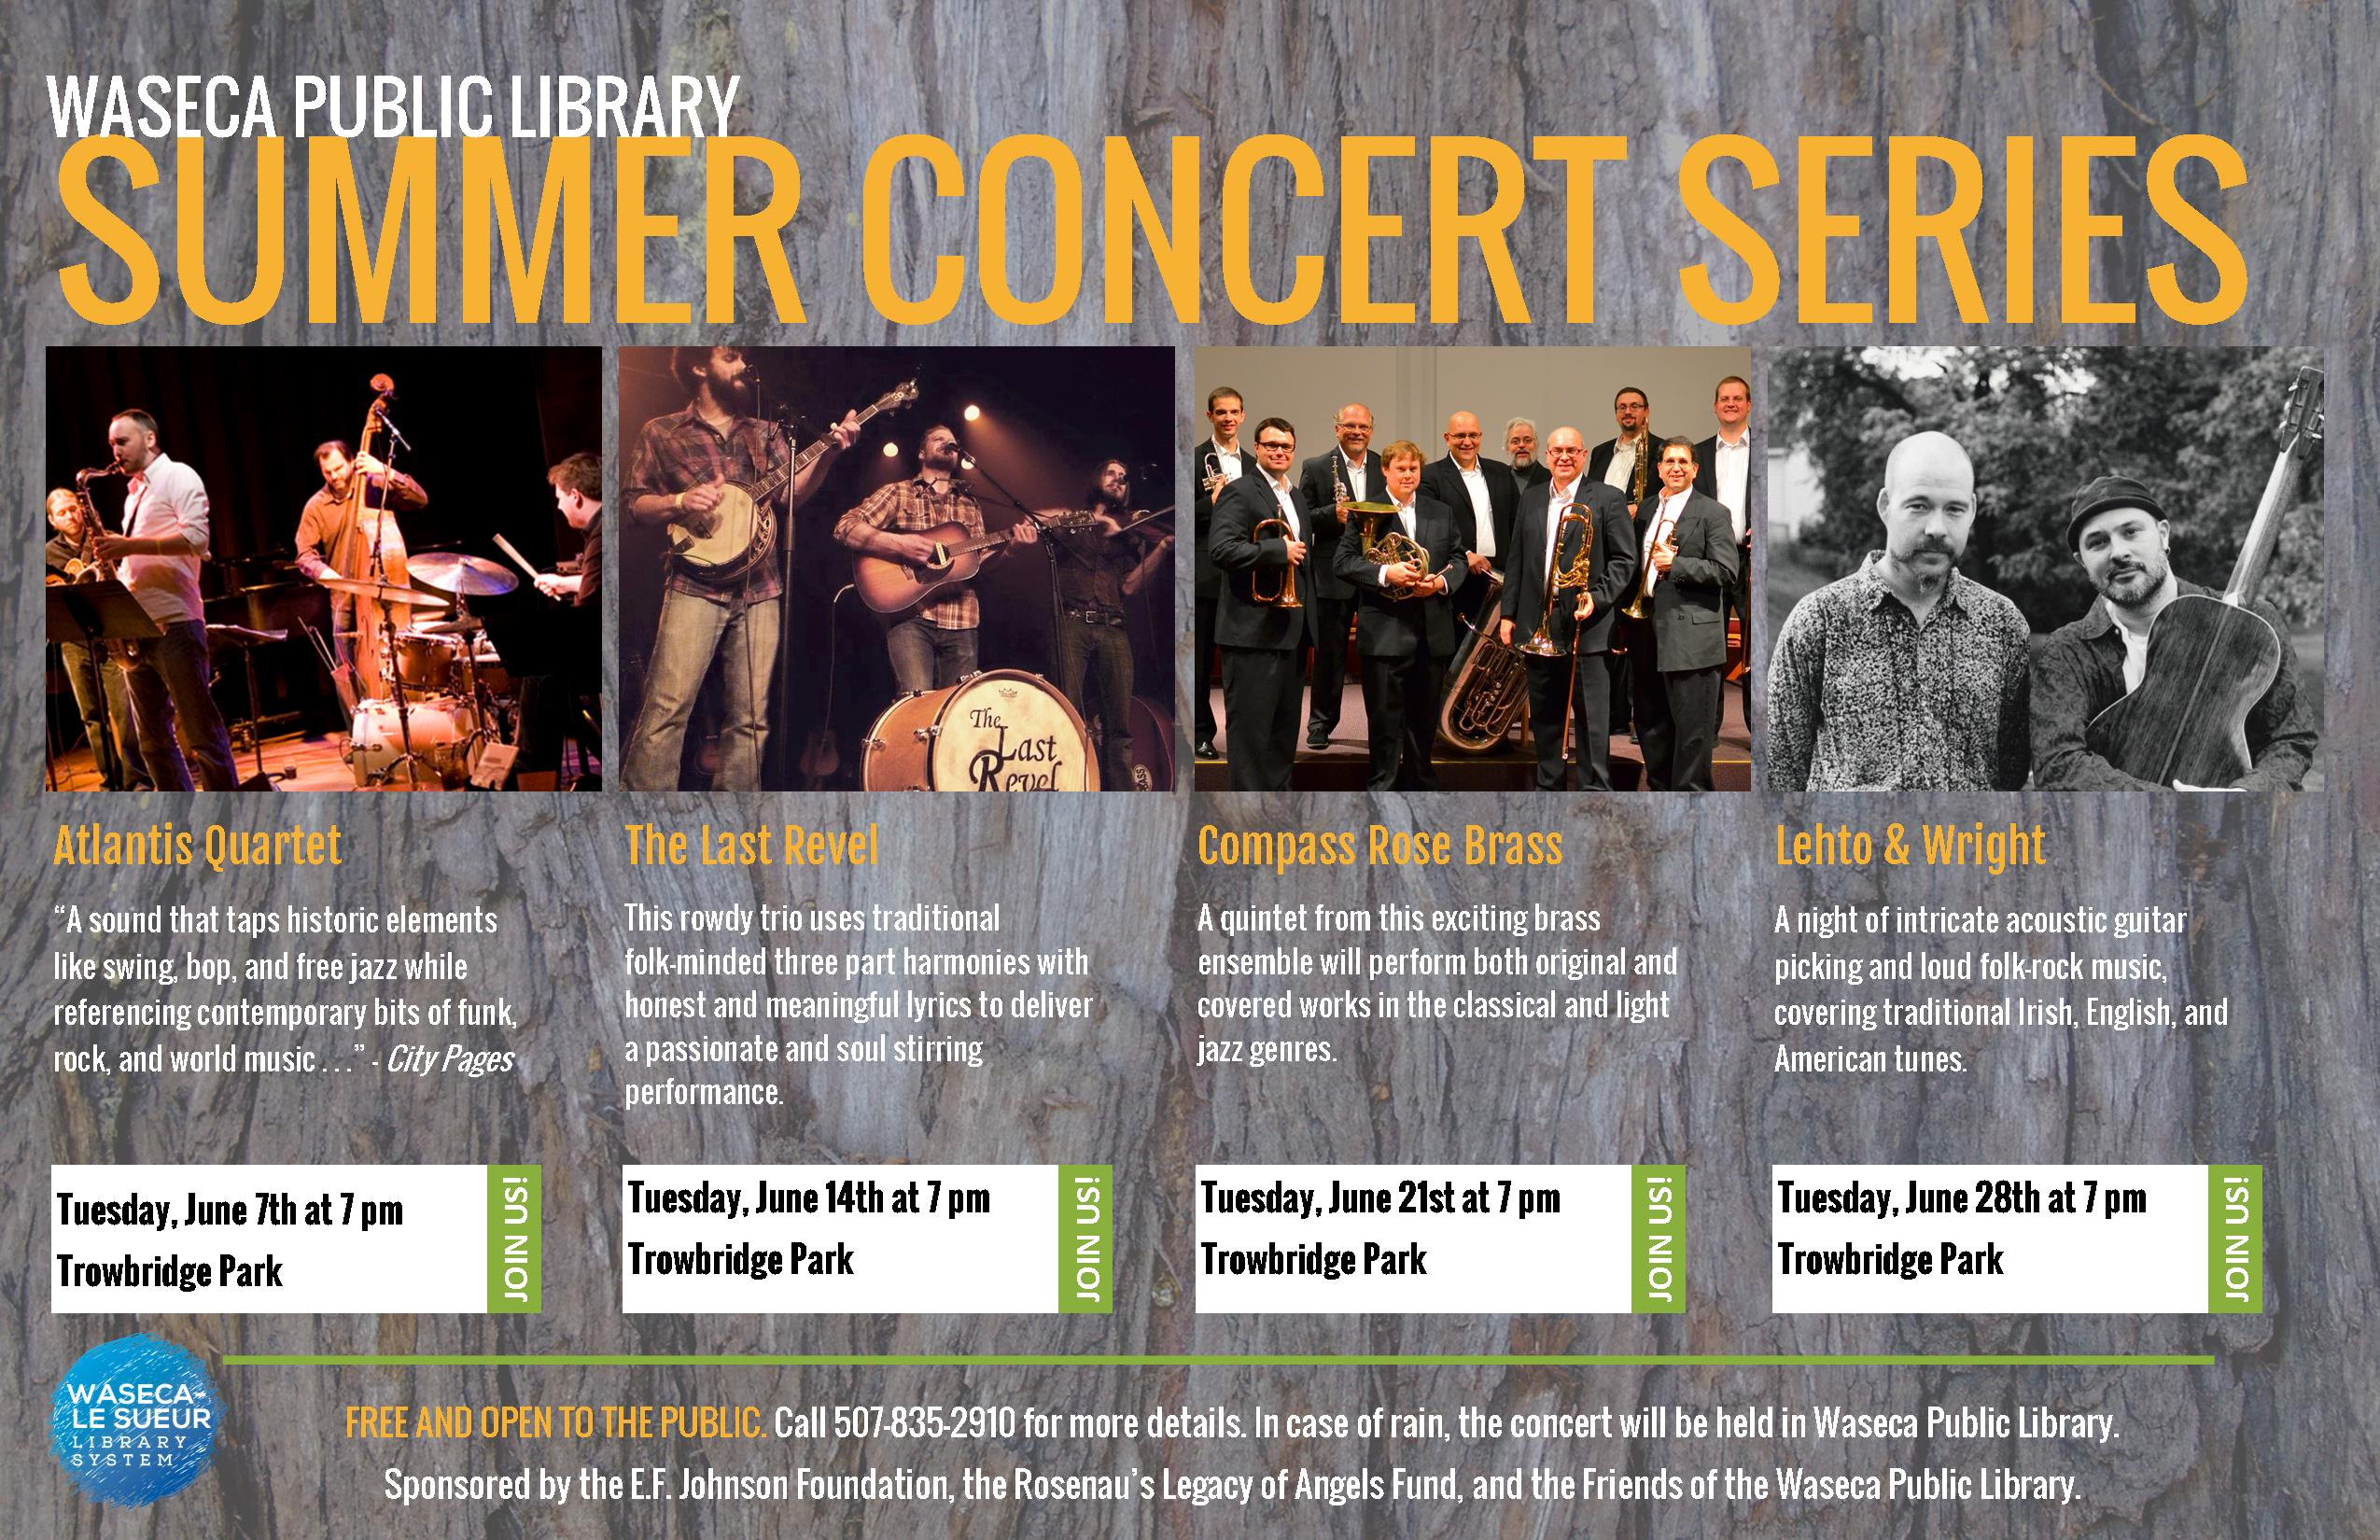 Announcing Waseca Public Library's 2016 Summer Concert Series!